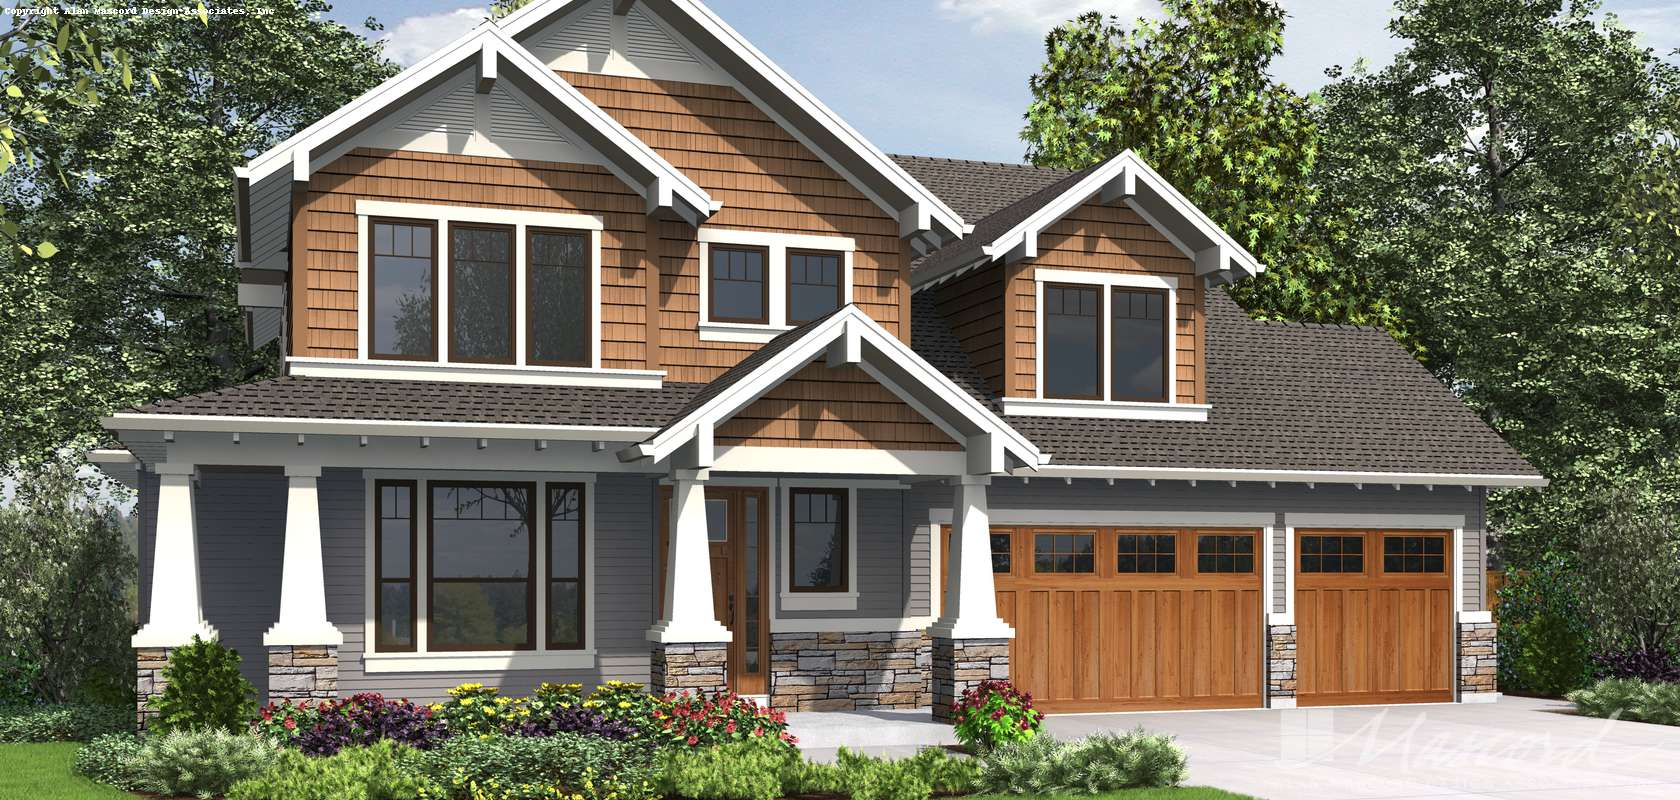 Mascord House Plan 22199A: The Jefferson